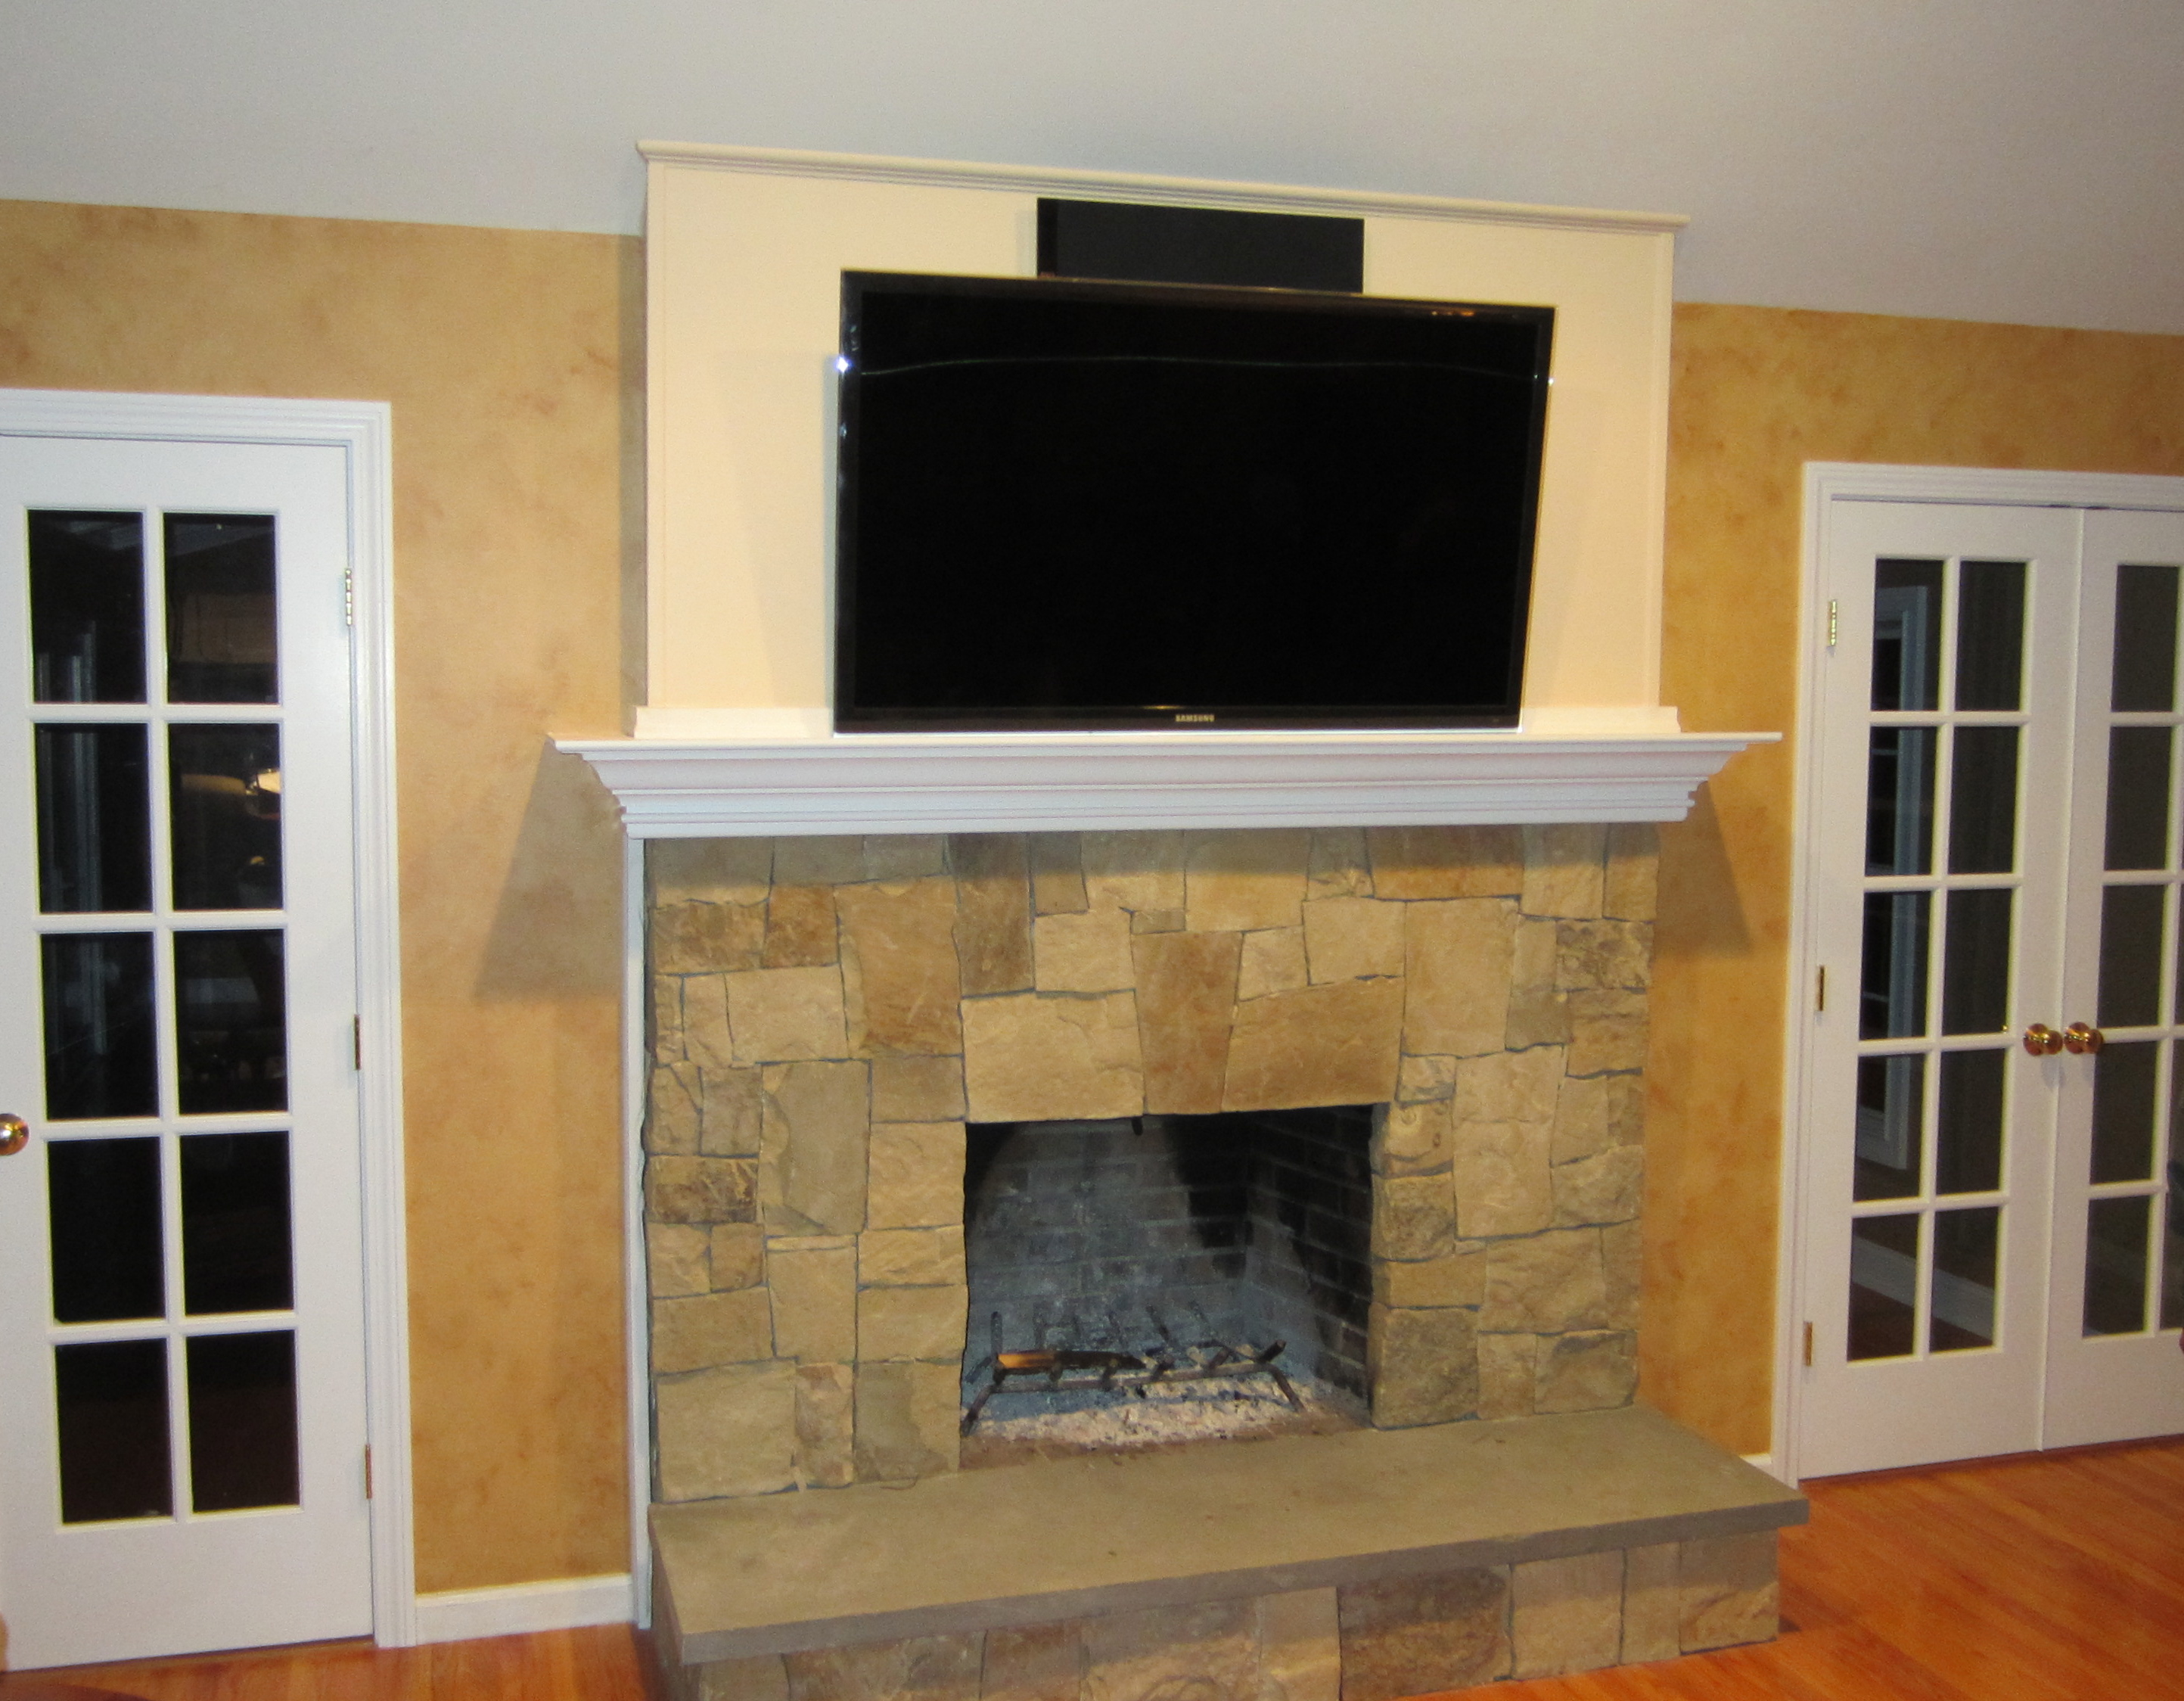 Blog Home Theater Installation Connecticuts Finest Wiring With Cable Box Newtown Ct Tv Over Fireplace